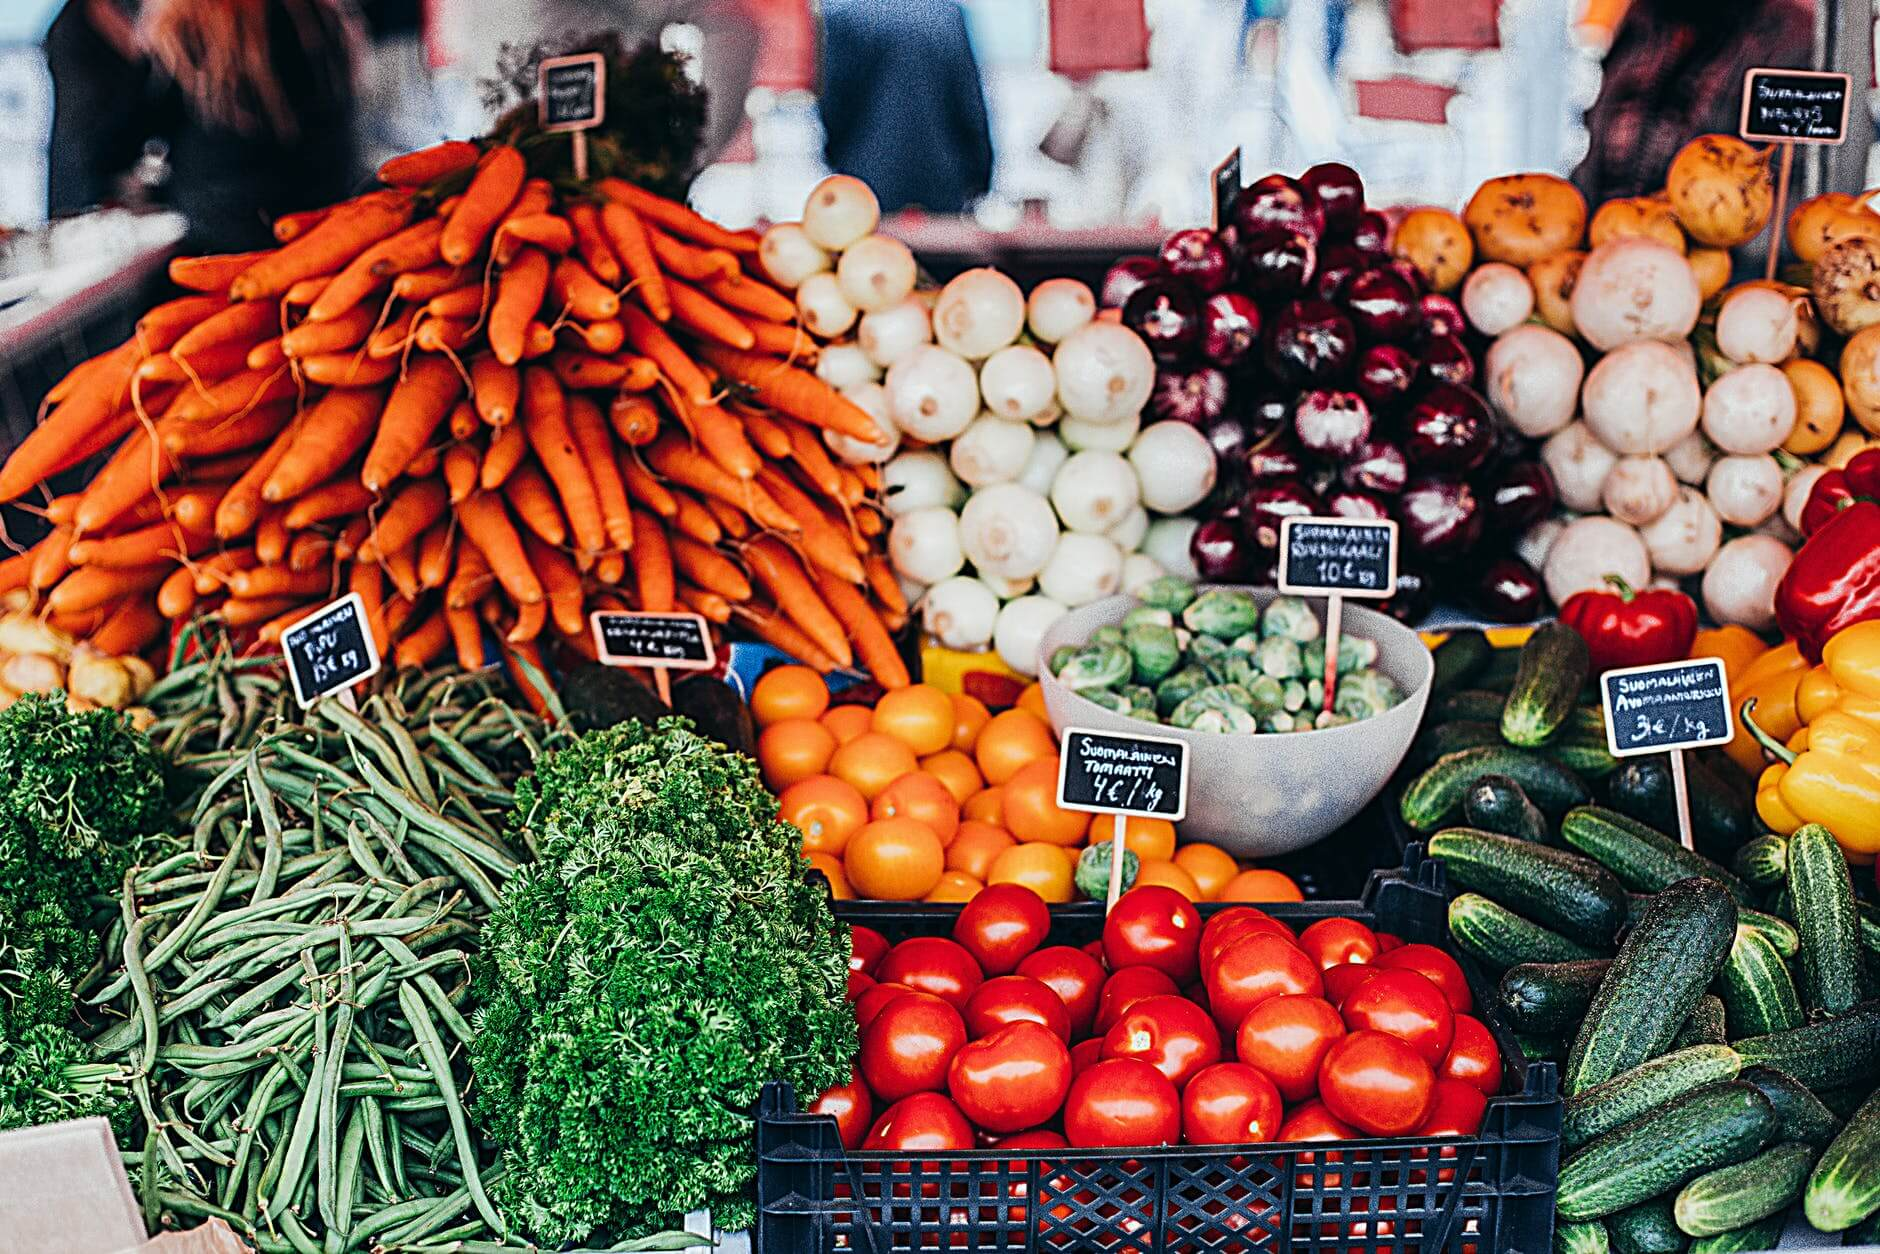 2020 GUIDE TO METRO DETROIT FARMERS MARKETS